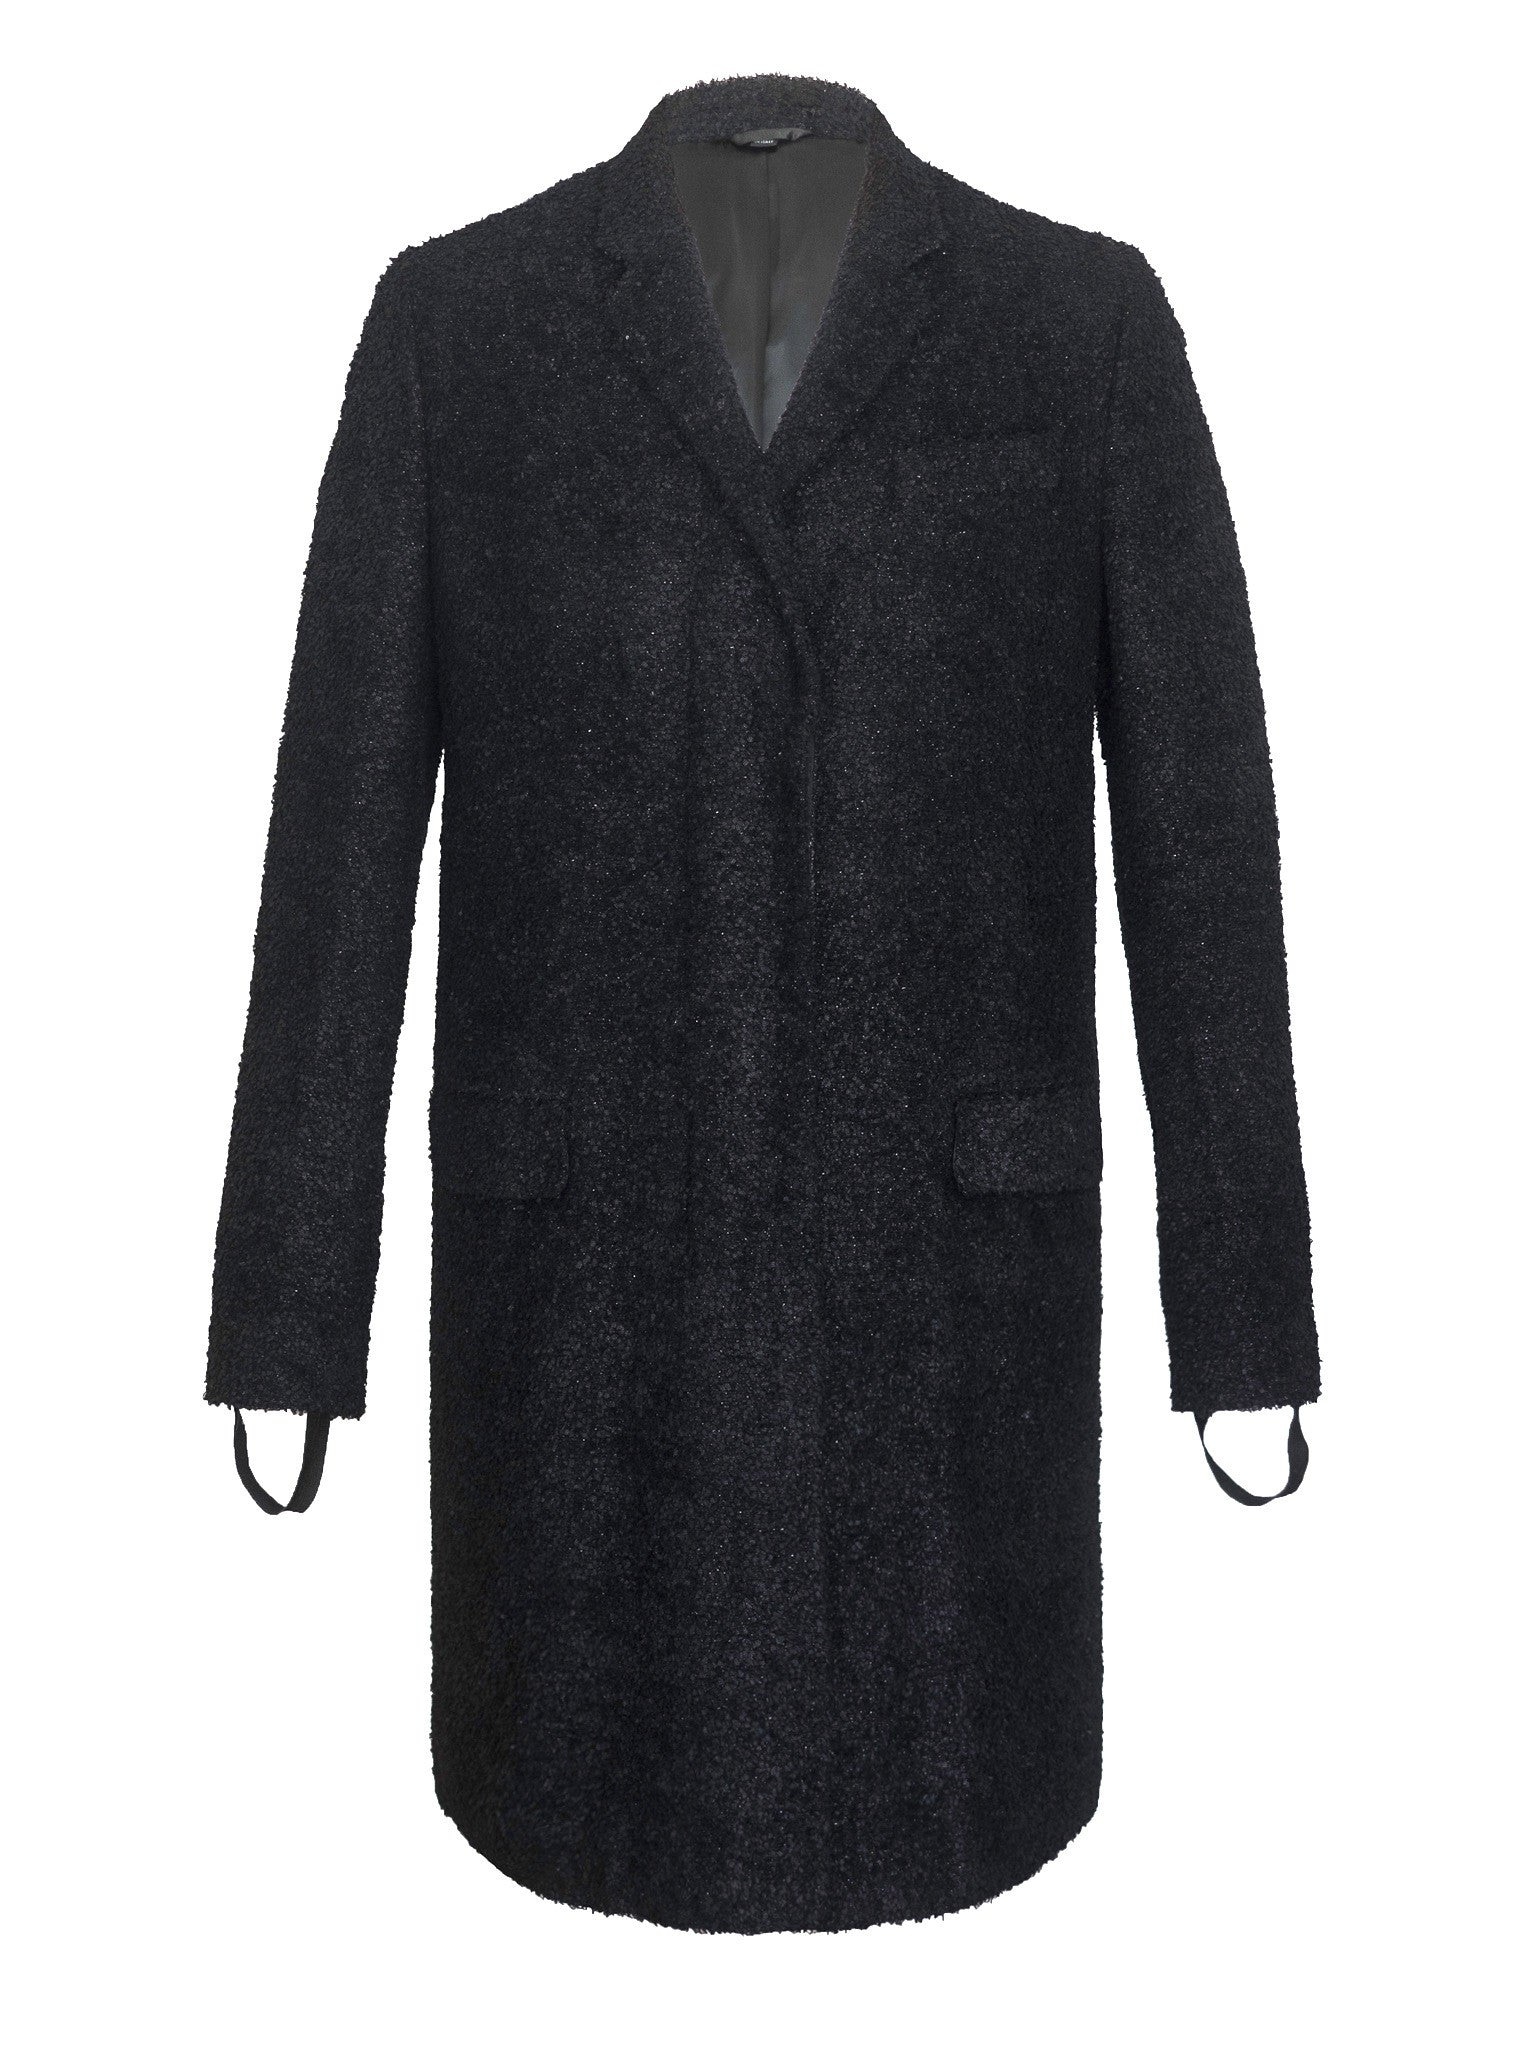 2003 Melted Wool Bouclé Chesterfield Coat with Bondage Cuff Straps